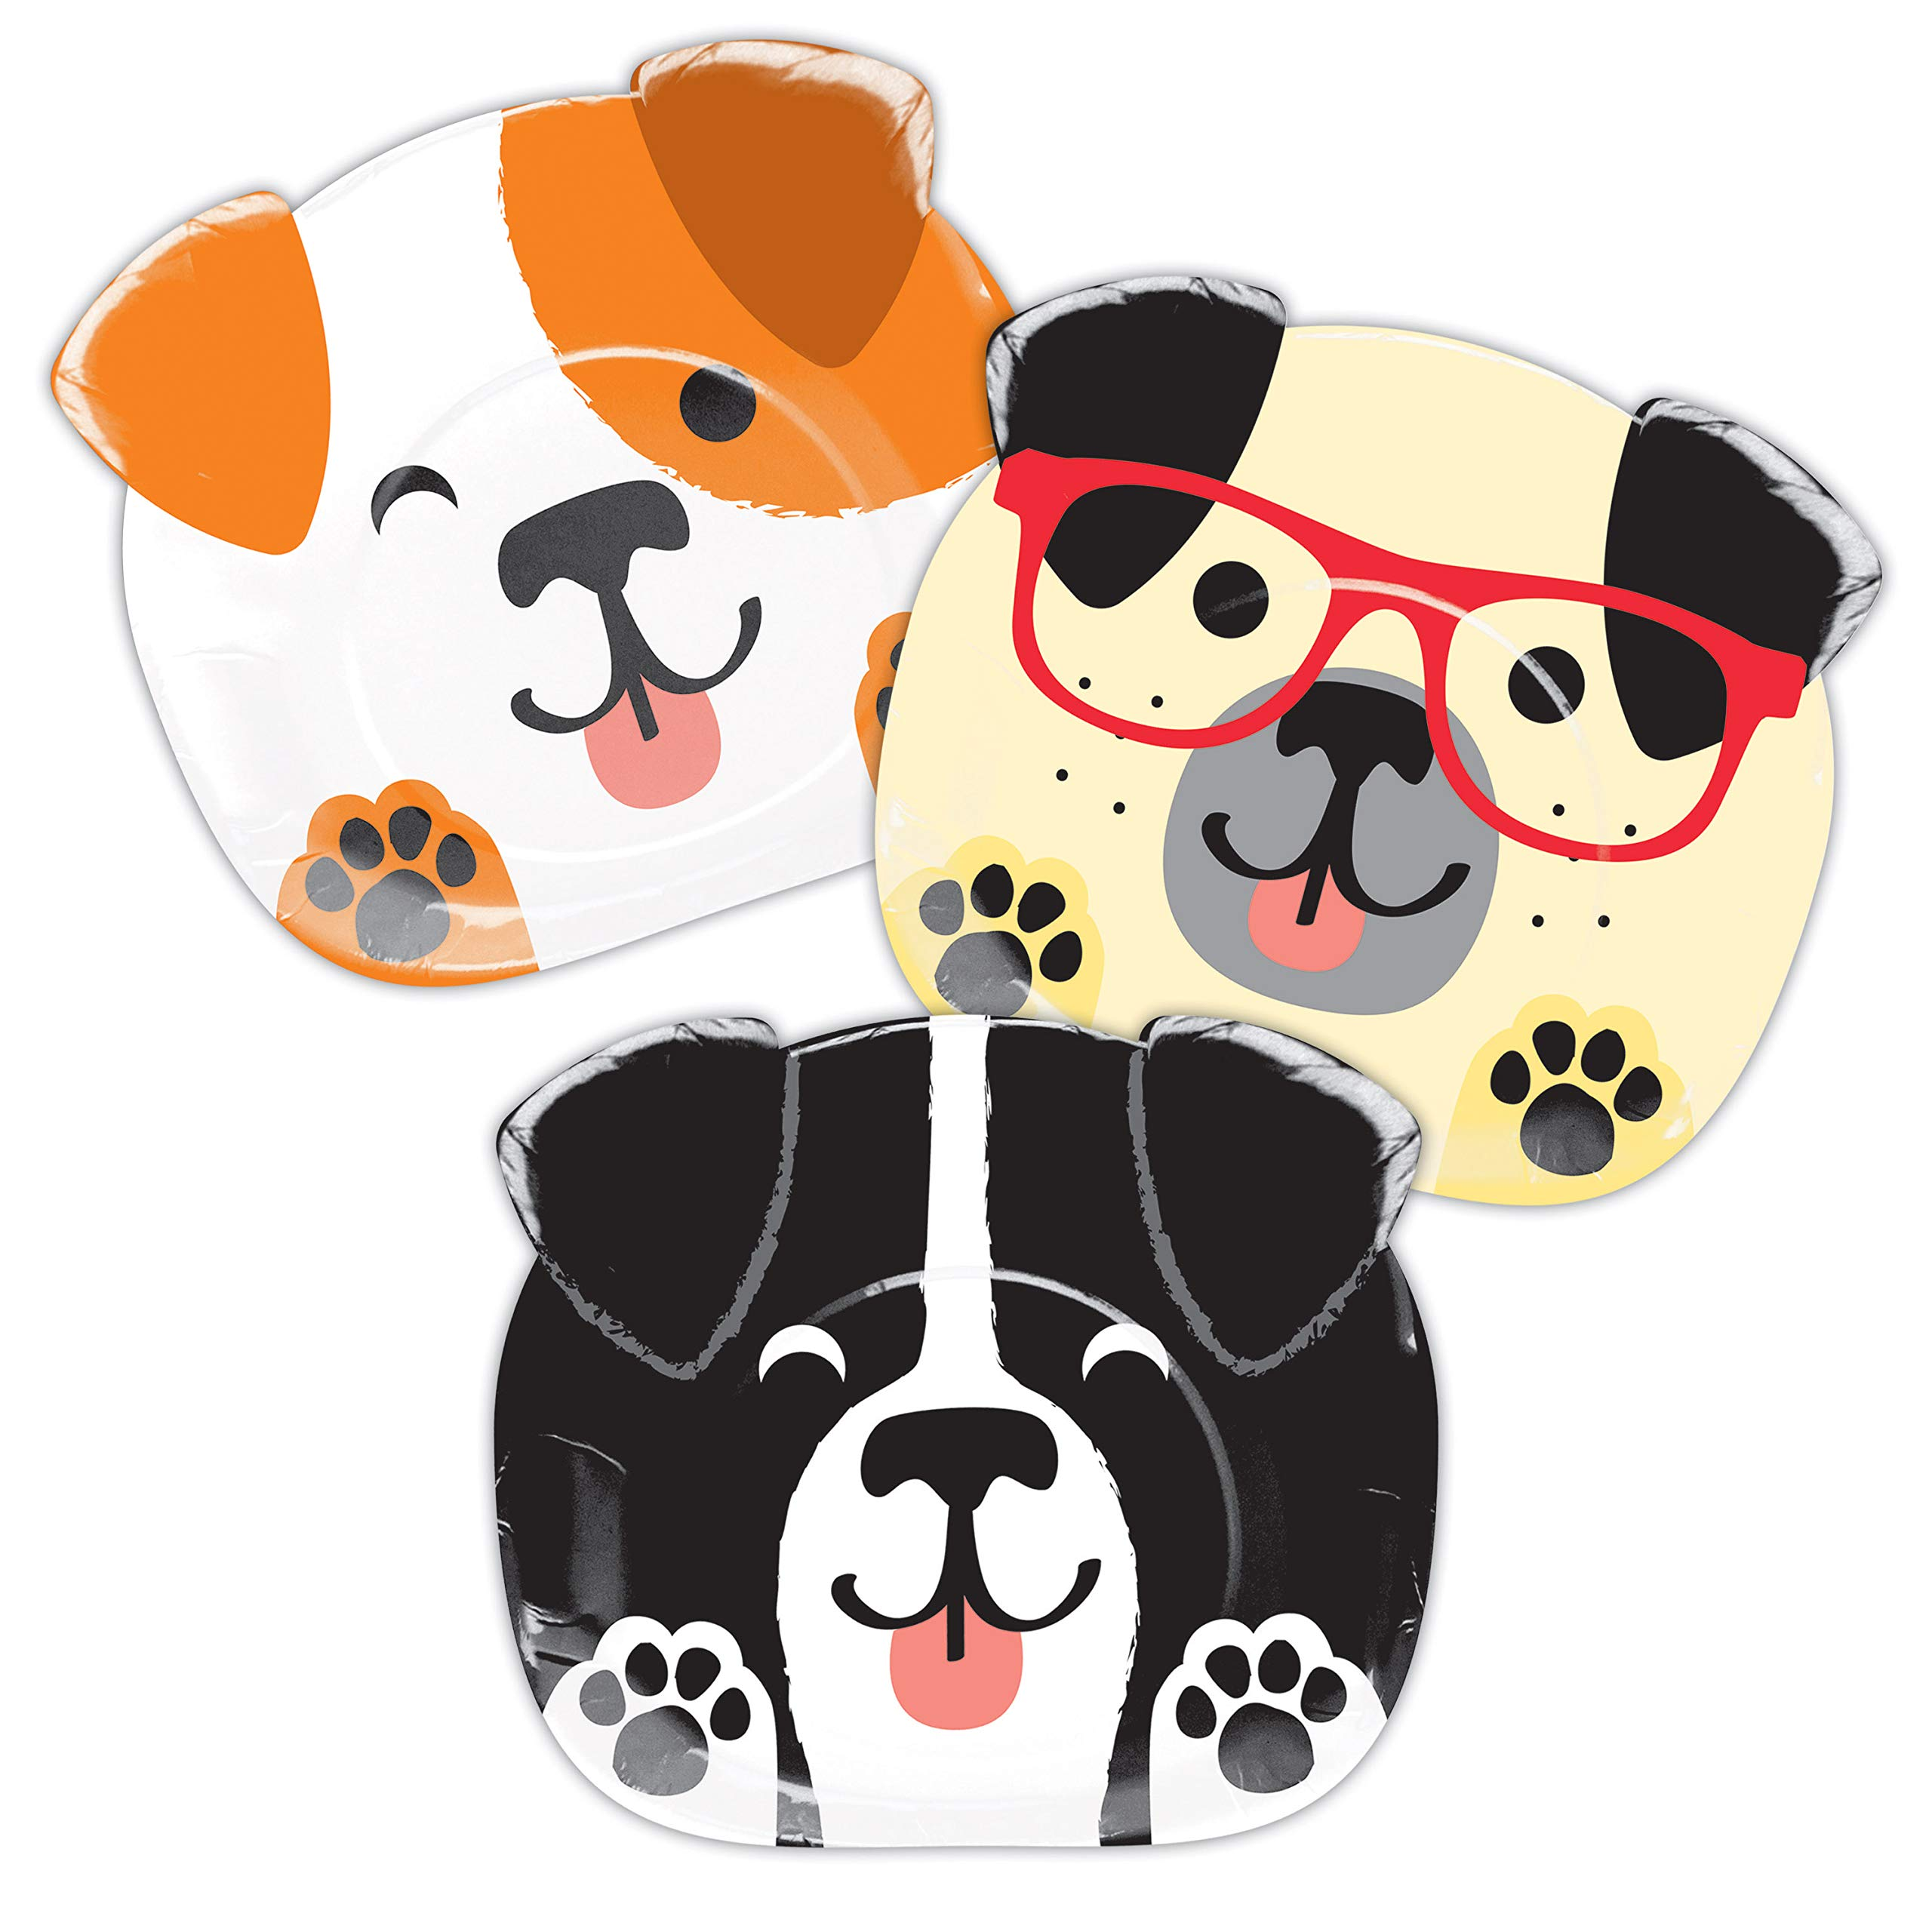 Dog Party Shaped Dinner Plates, 24 ct by Creative Converting